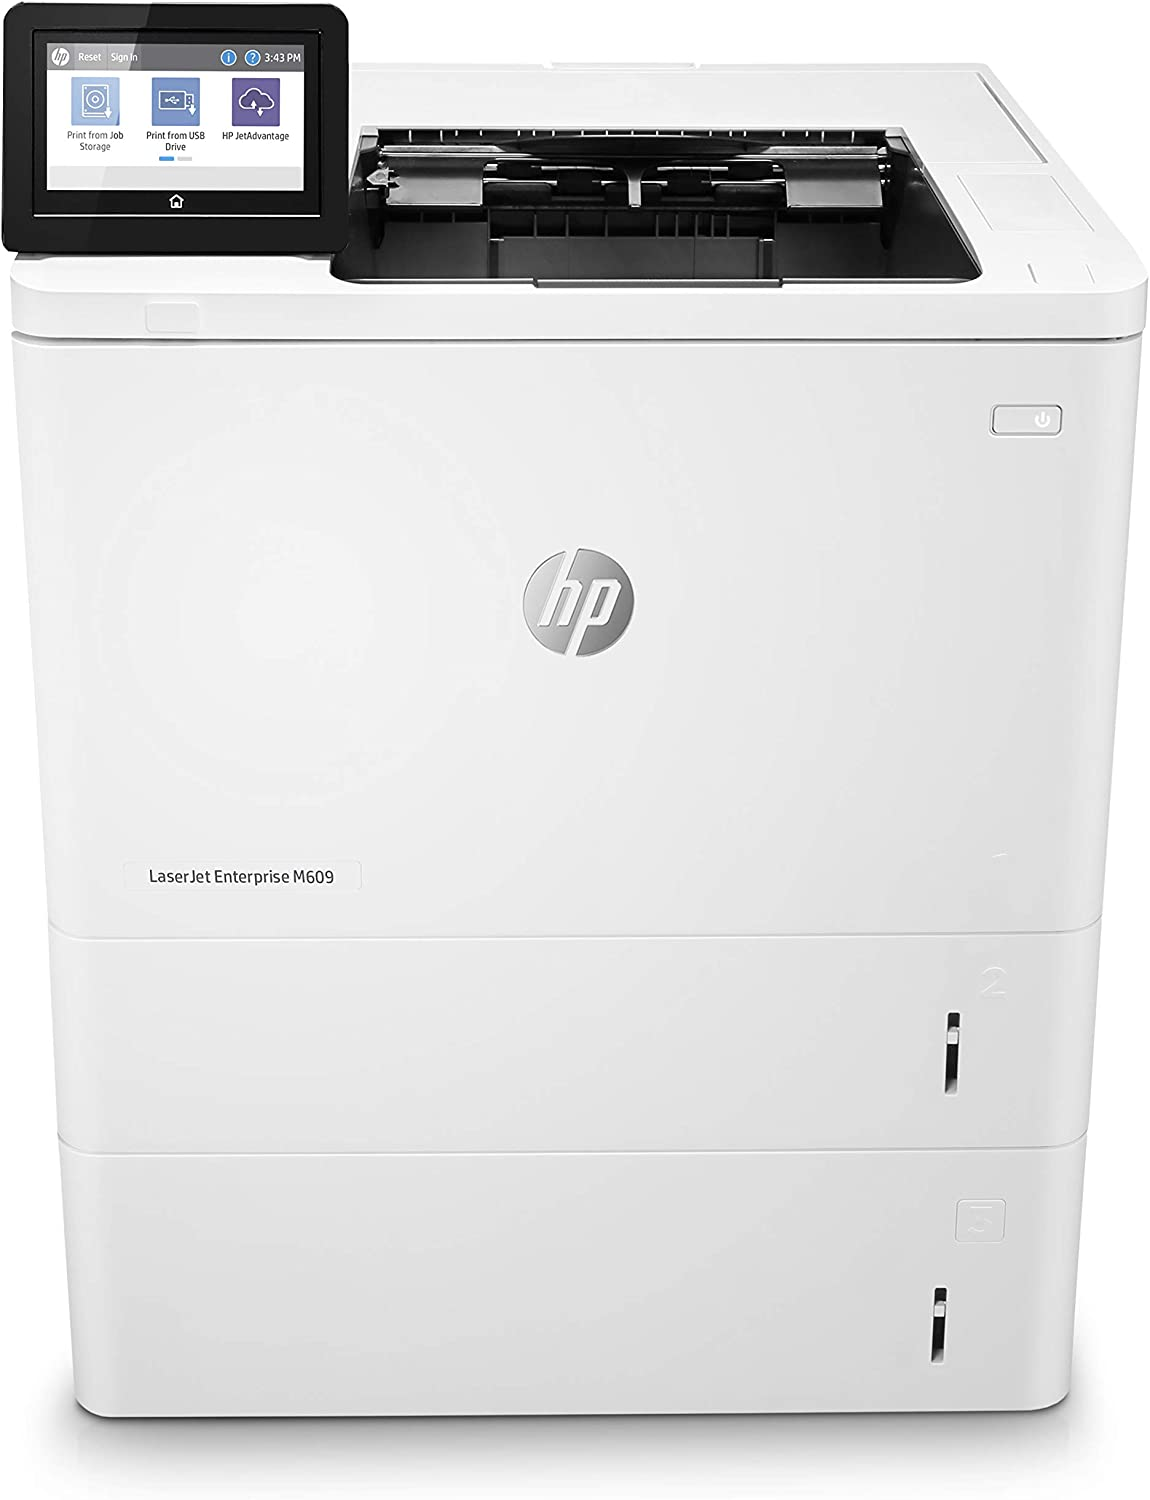 HP LaserJet Enterprise M609x Monochrome Duplex Printer with One-Year, Next-Business Day, Onsite -Warranty and Extra Paper Tray (K0Q22A)